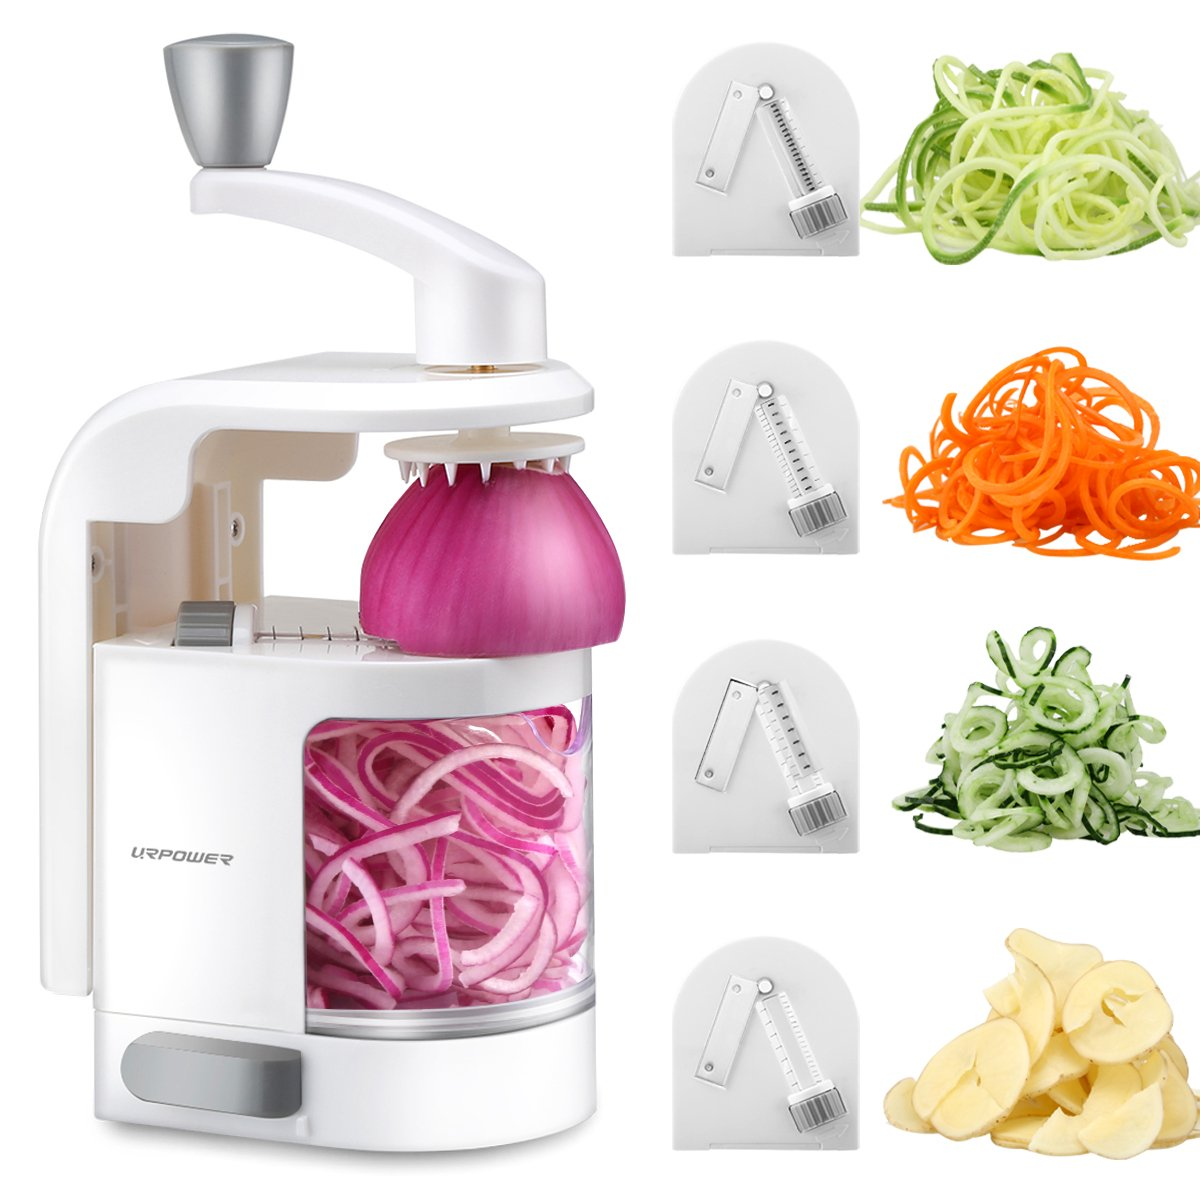 URPOWER Spiralizer Vegetable Slicer 4-Blade Vegetable Spiralizer, Veggie Pasta Spaghetti Maker, Perfect for Salad, Zucchini Noodles, Pasta and Cut Vegetables, Make Low Carb/Paleo/Gluten-Free Meals by URPOWER